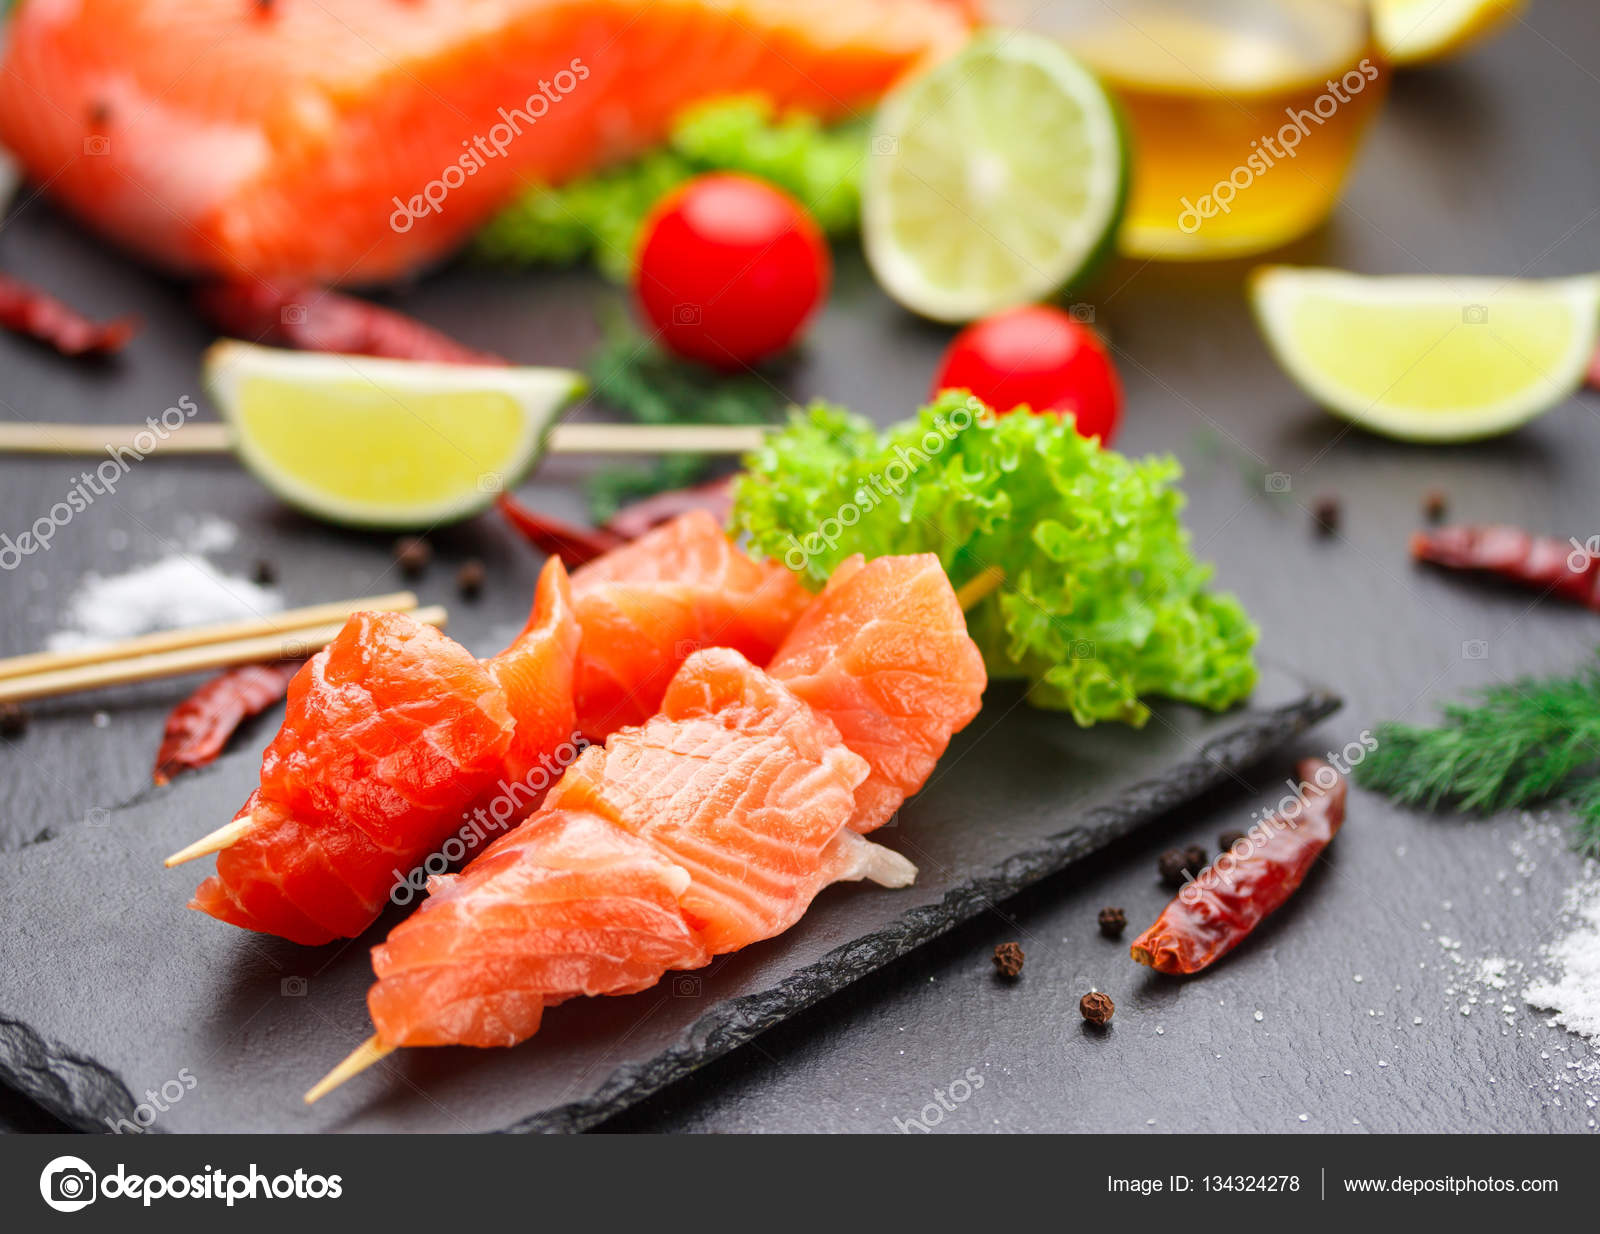 Raw Salmon Skewers On A Stone Plate Tomatoes Lime And Lettuce For